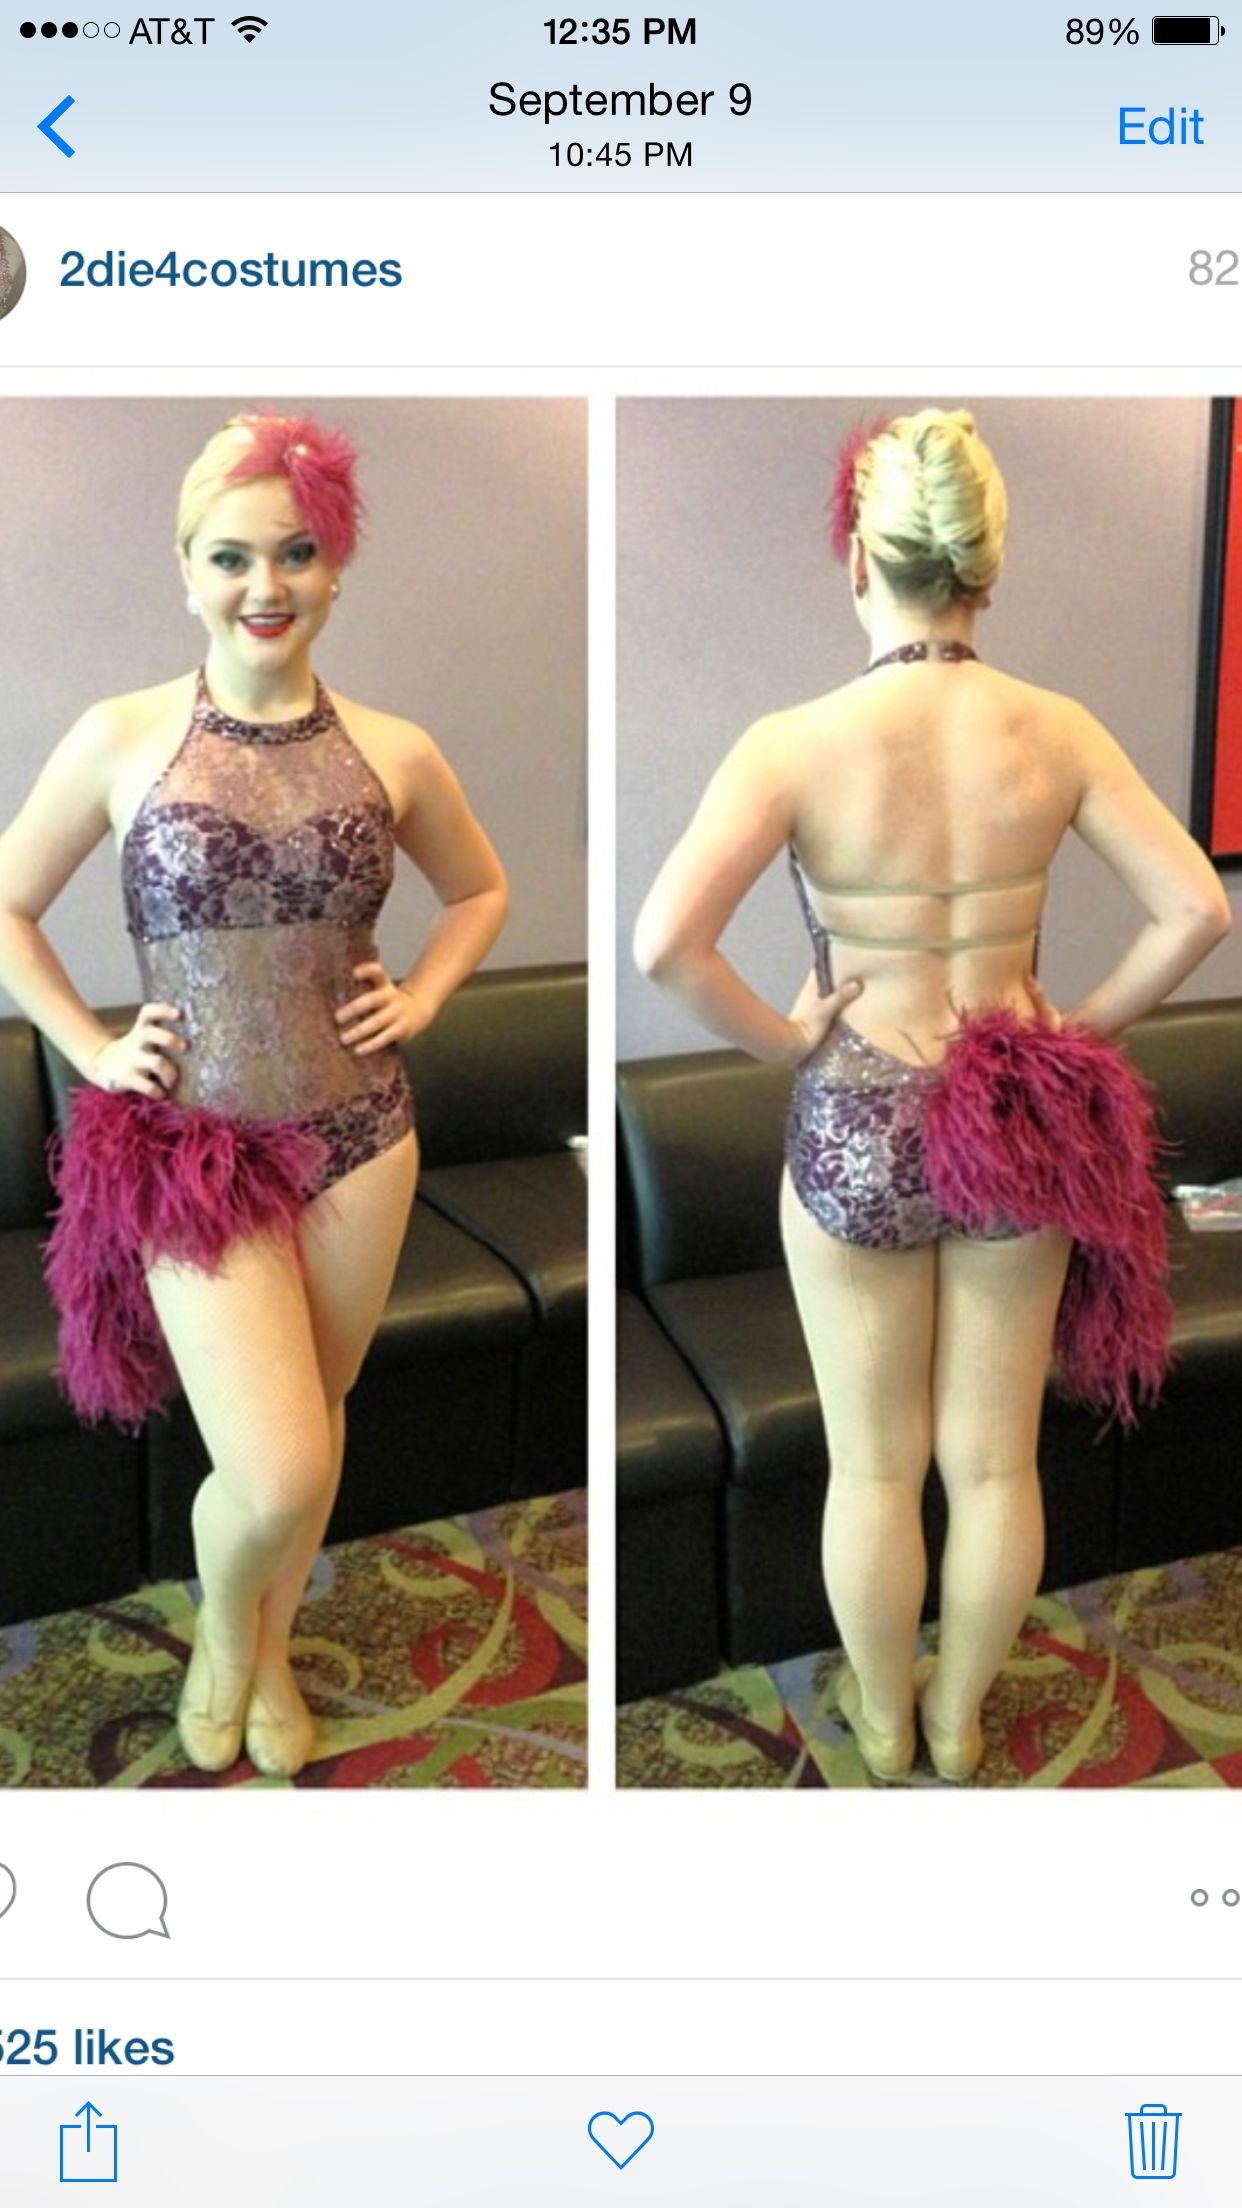 Breanna's solo feathers